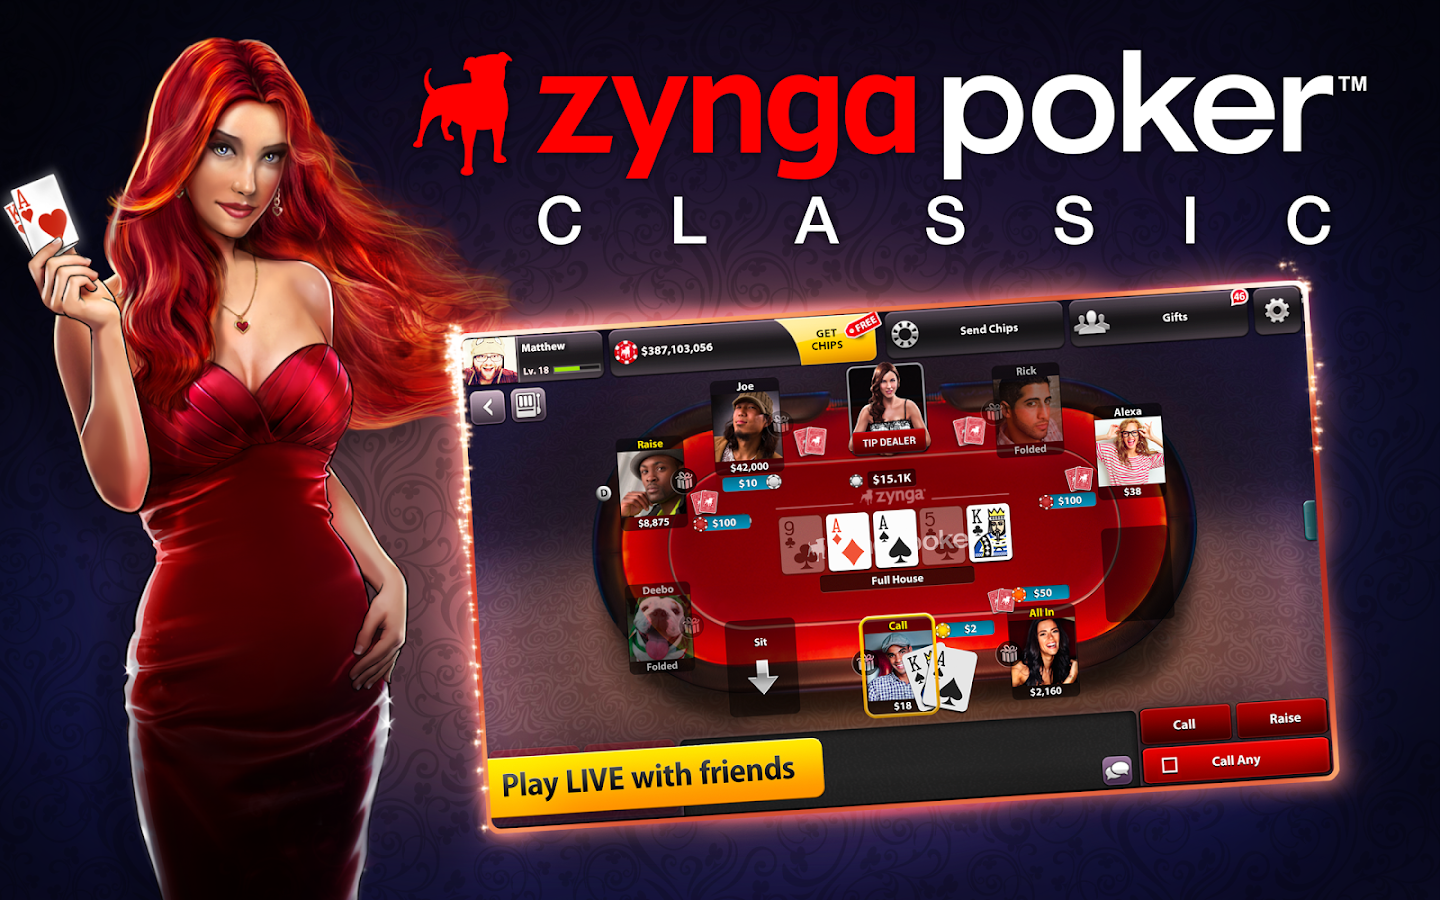 Best place to play poker online for money